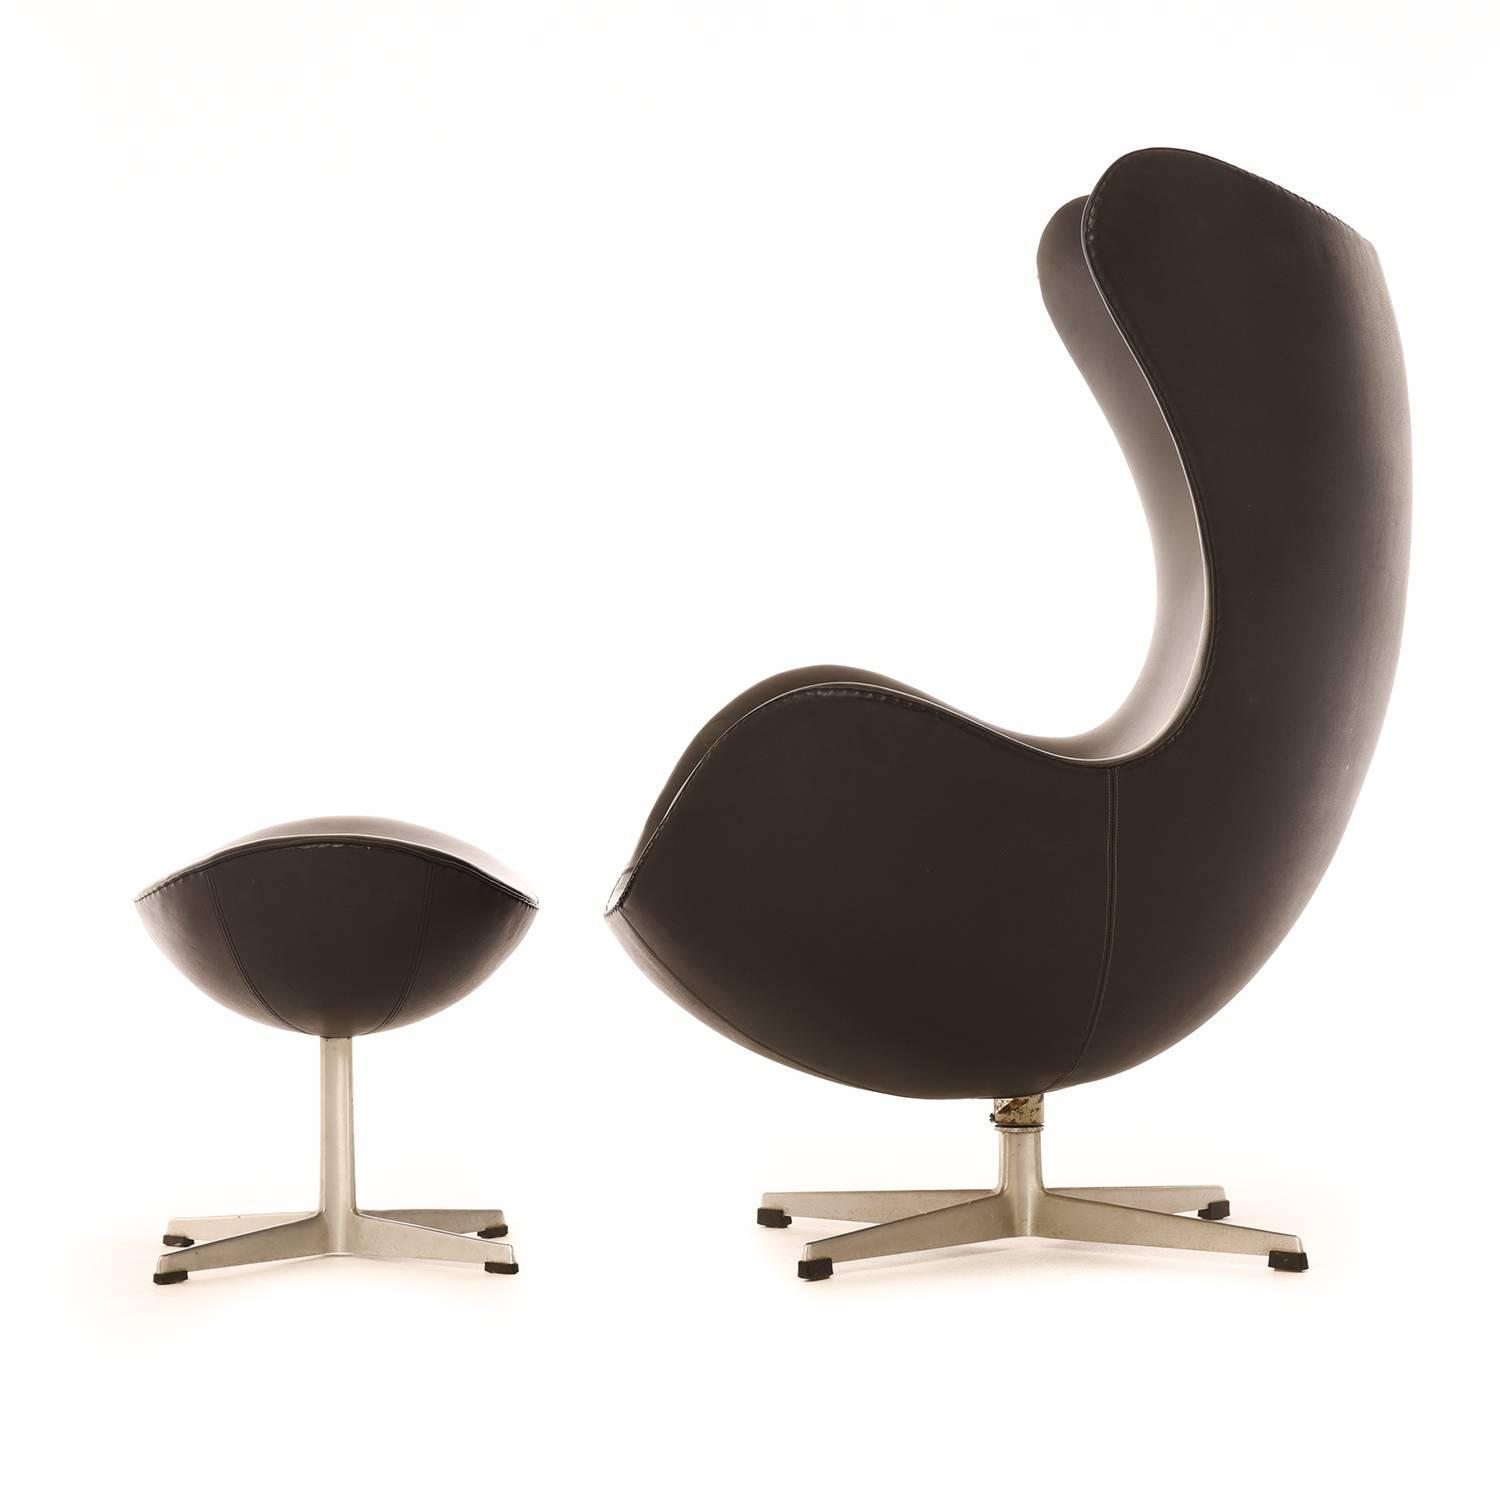 danish modern egg chair with ottoman for sale at 1stdibs. Black Bedroom Furniture Sets. Home Design Ideas